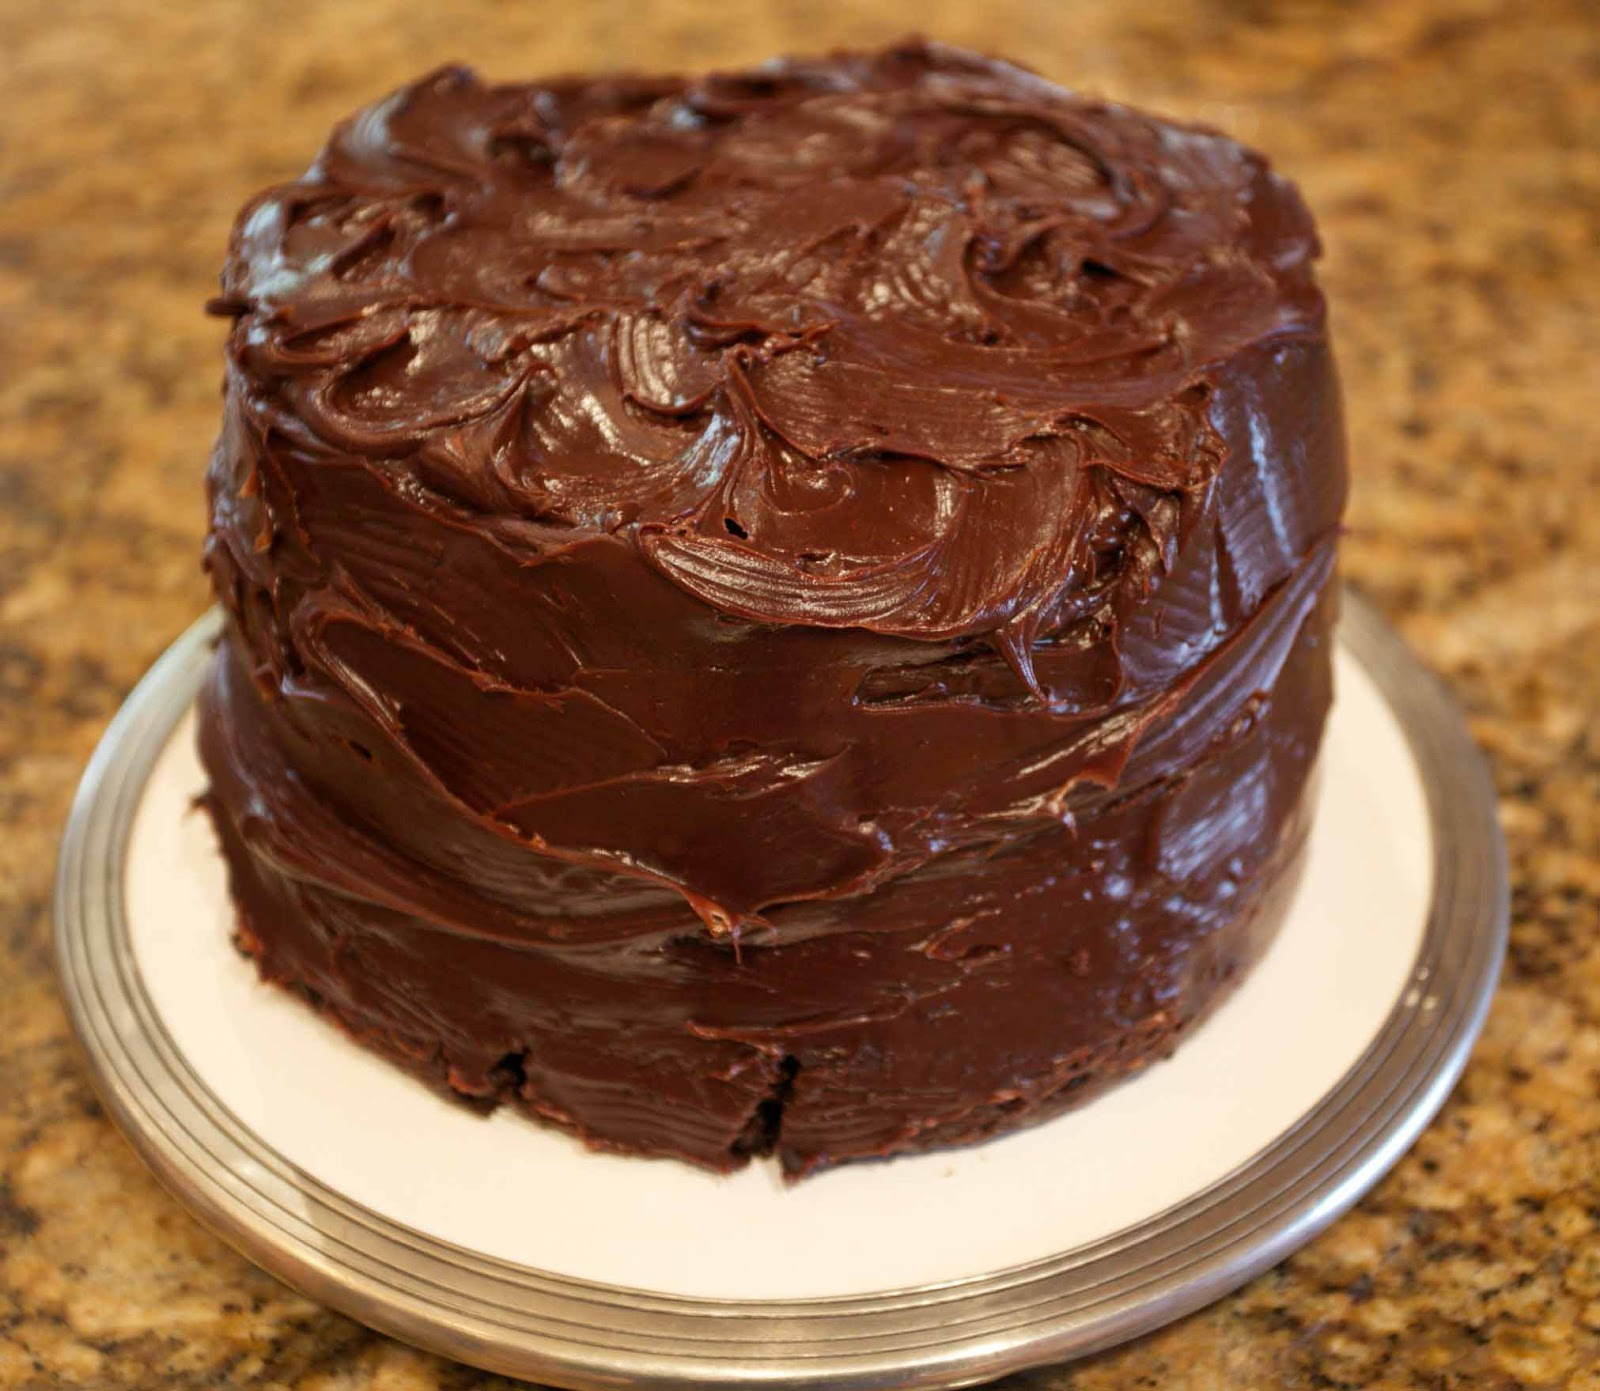 Octoberfarm: The Best Double Chocolate Cake